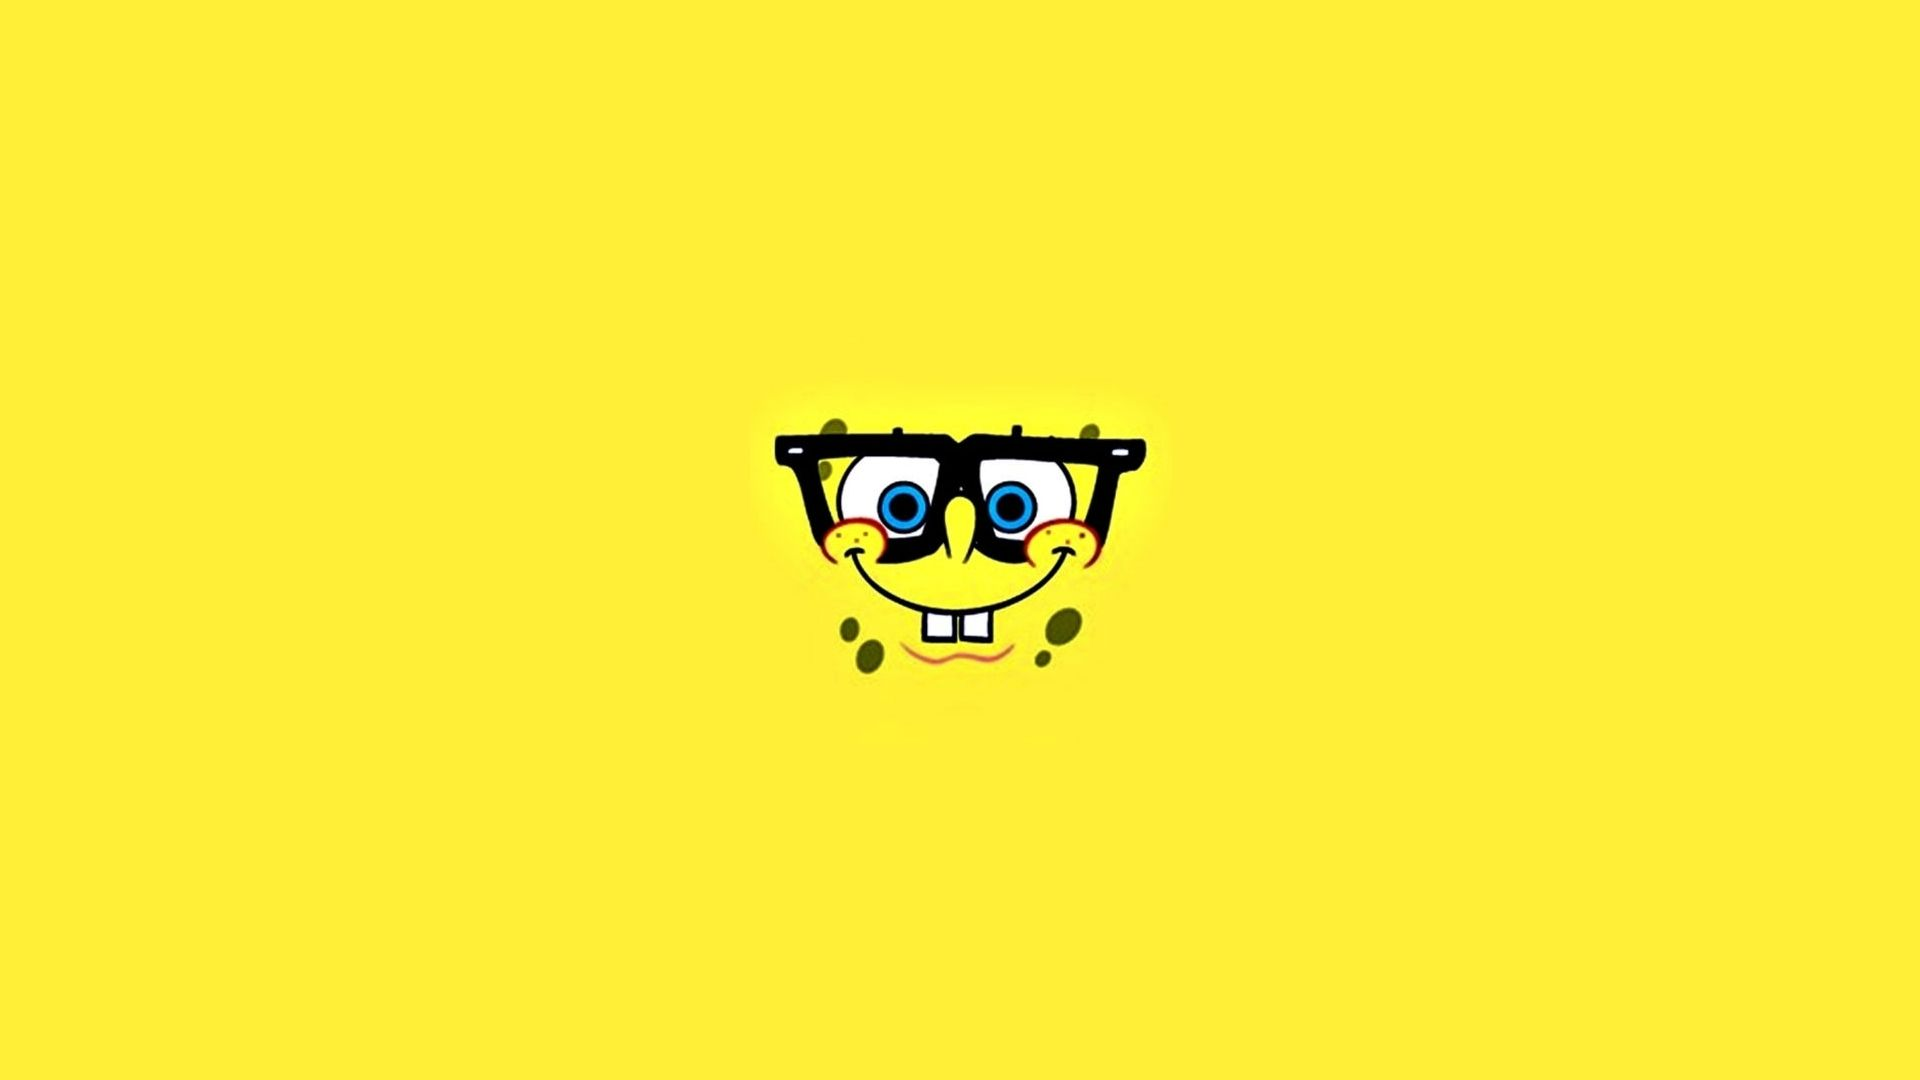 Spongebob Face With Glasses Minimalist Wallpaper Funny Pinterest